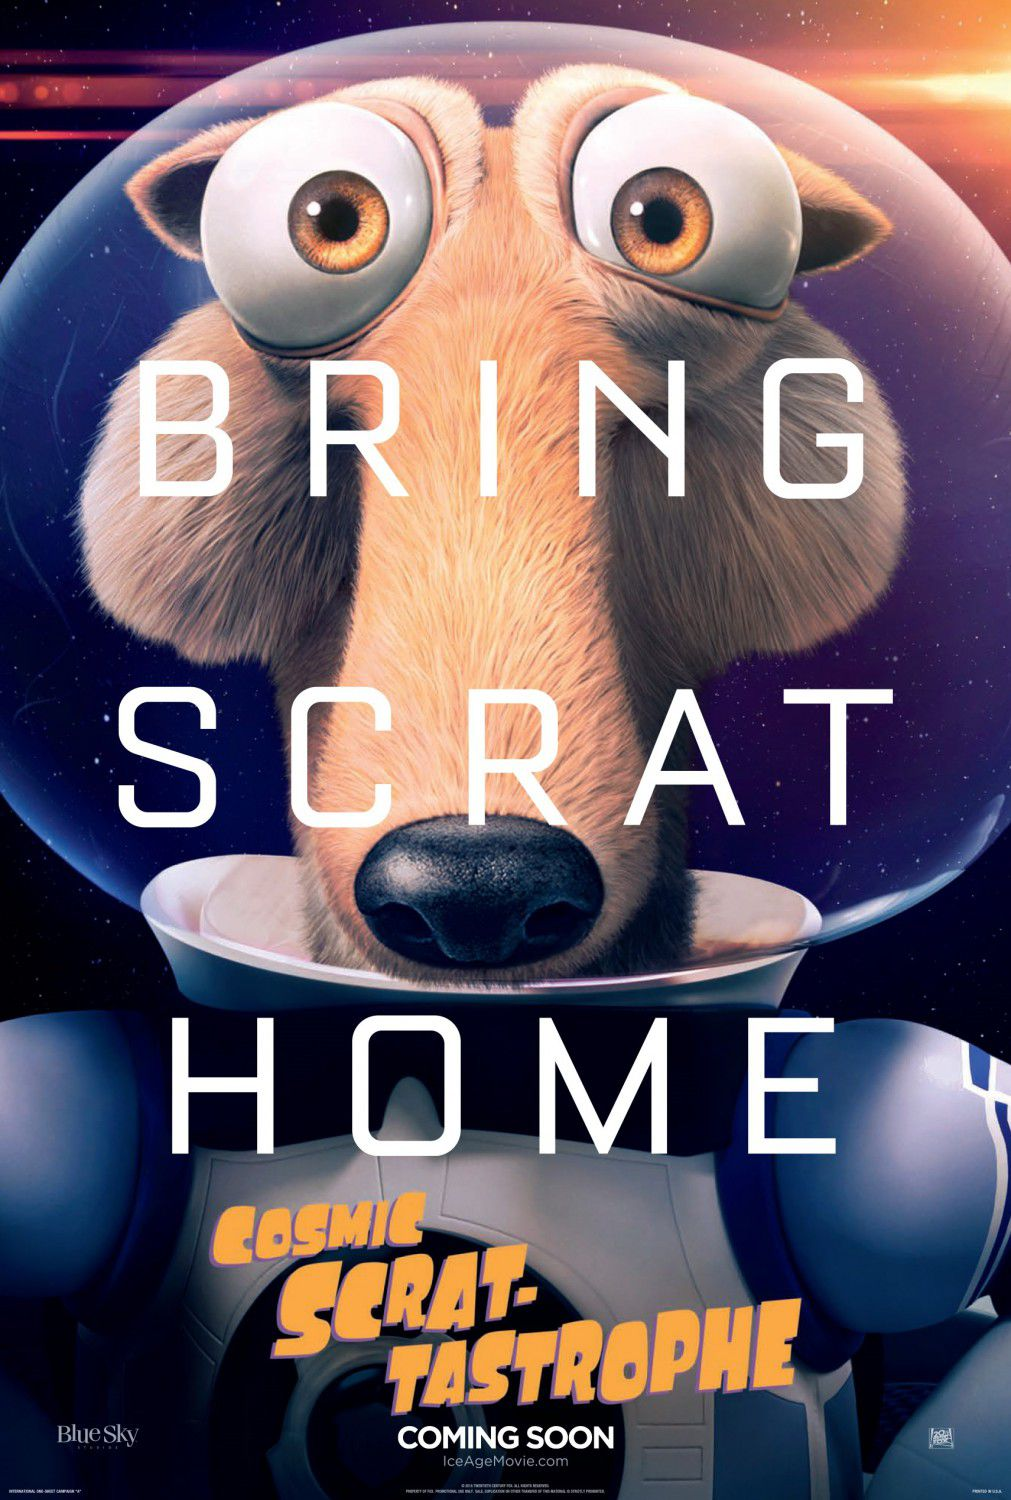 Ice Age 5 - Collision Course - Rotta di Collisione - bring Scrat home